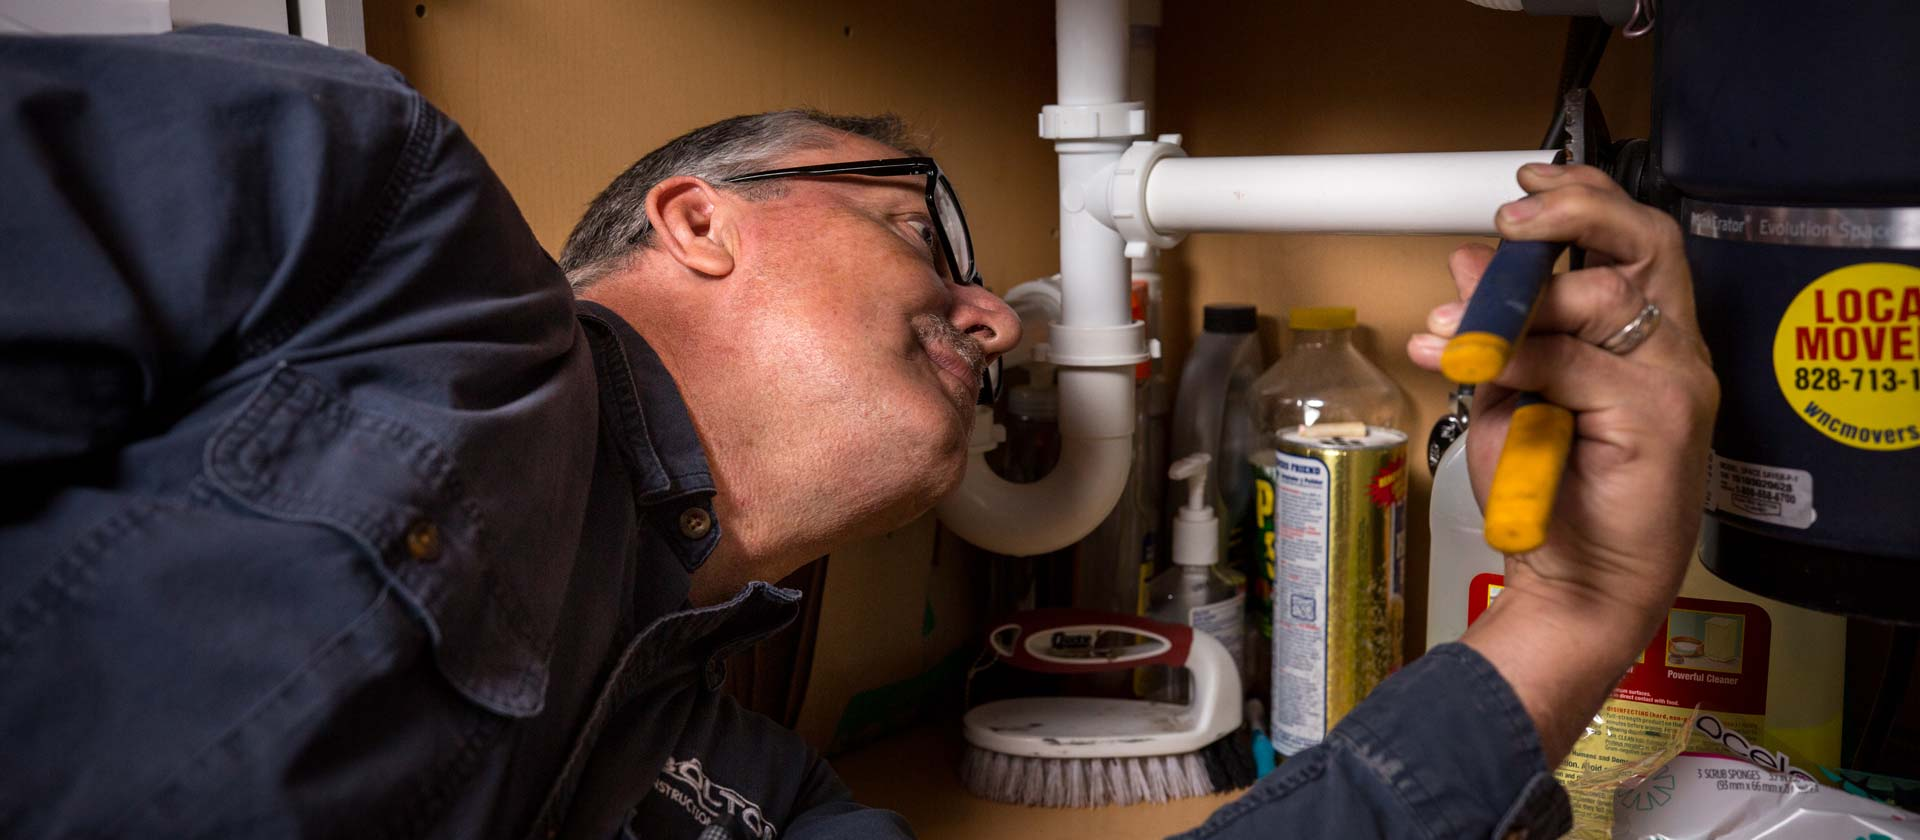 Why The Relief Valve At The Water Heater Is Leaking And What To Do